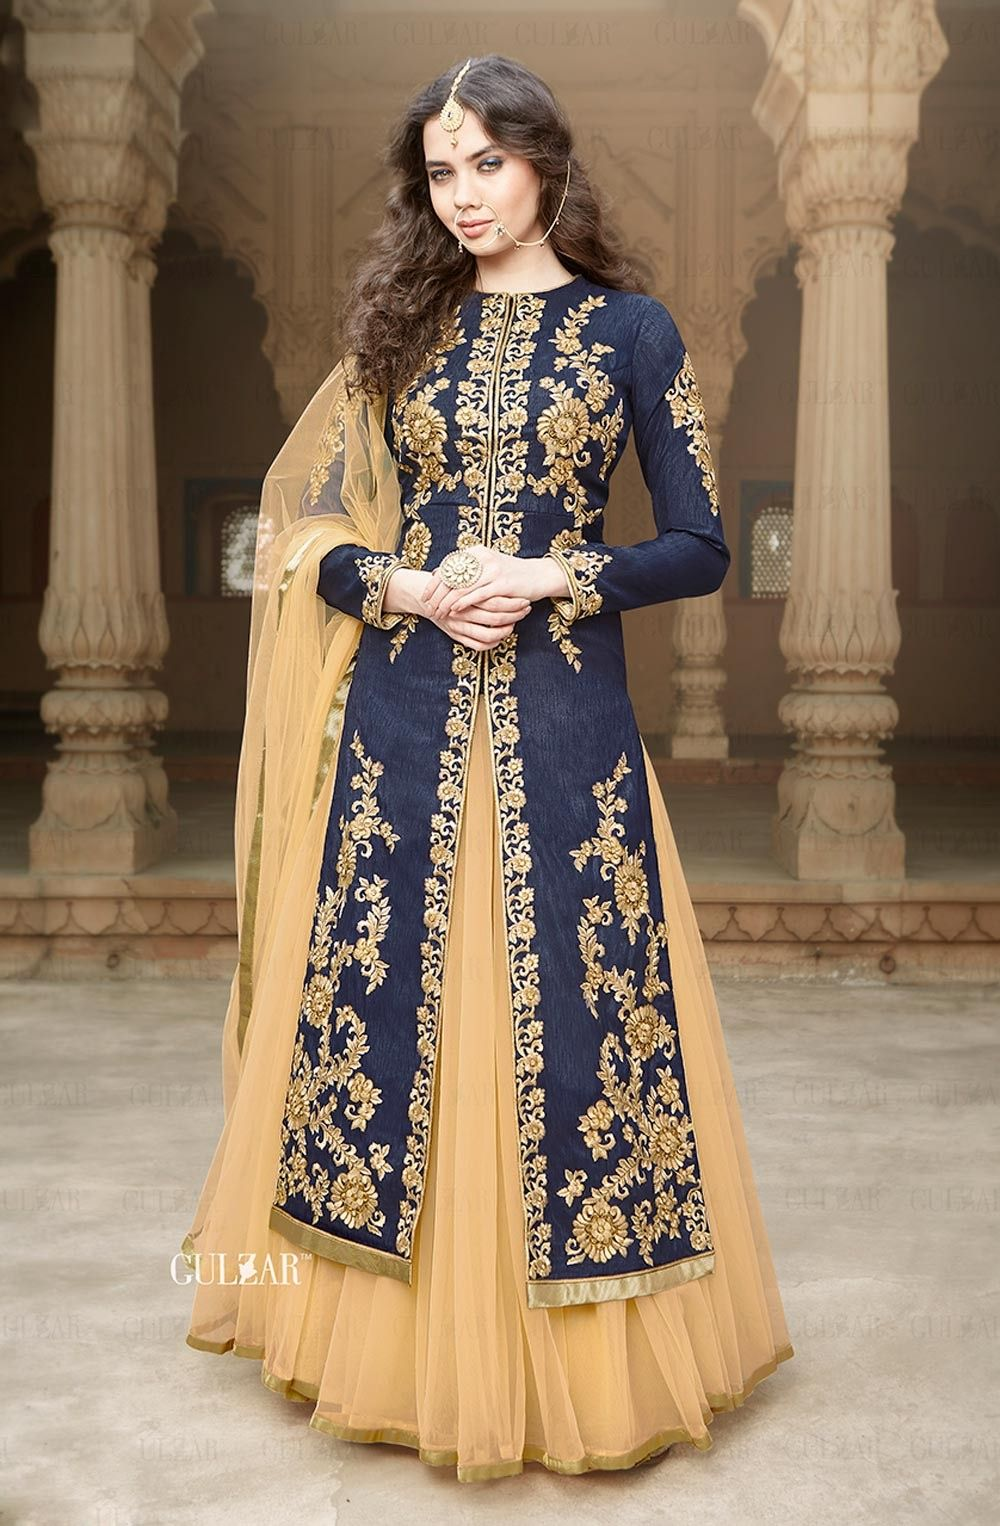 100+ Indian Long Dresses for Weddings - Plus Size Dresses for ...